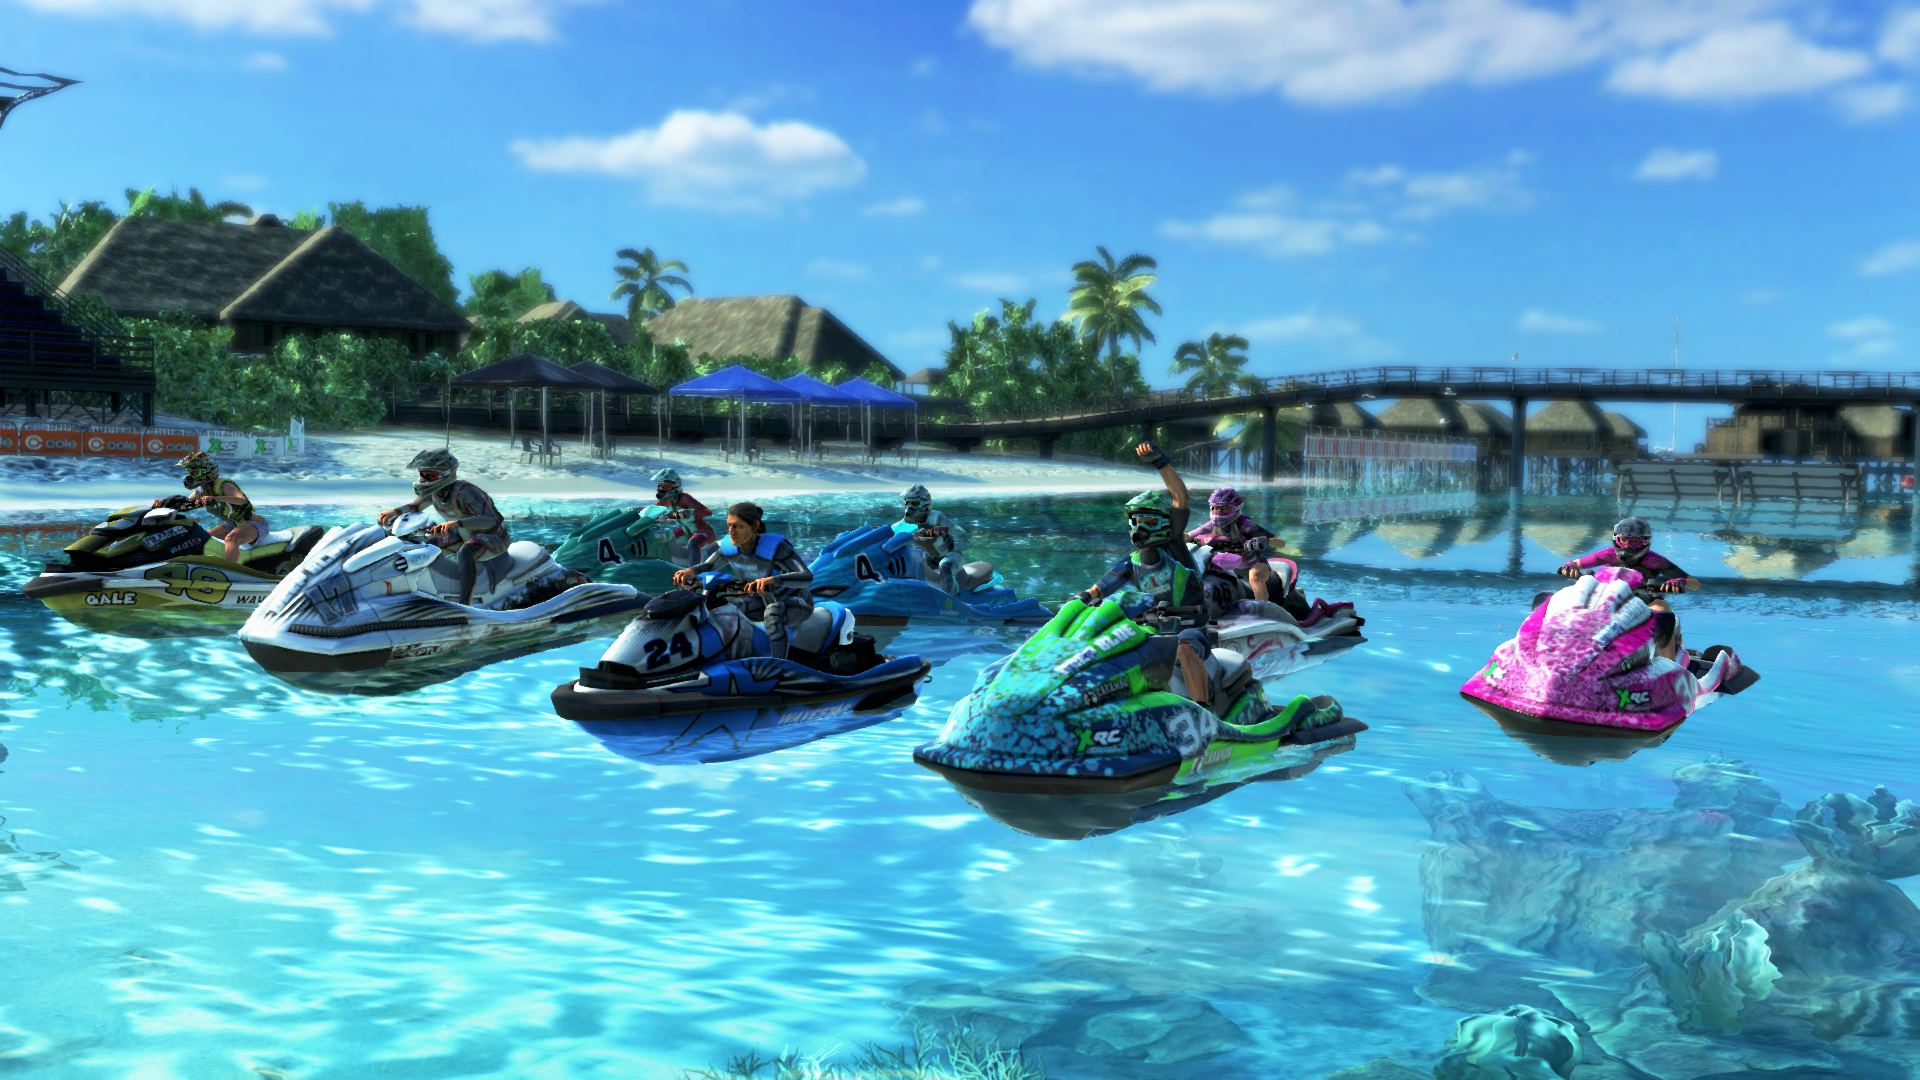 Video Aqua Moto Racing On Xbox One The Watercraft Journal The Best Resource For Jetski Waverunner And Seadoo Enthusiasts And Most Popular Personal Watercraft Site In The World